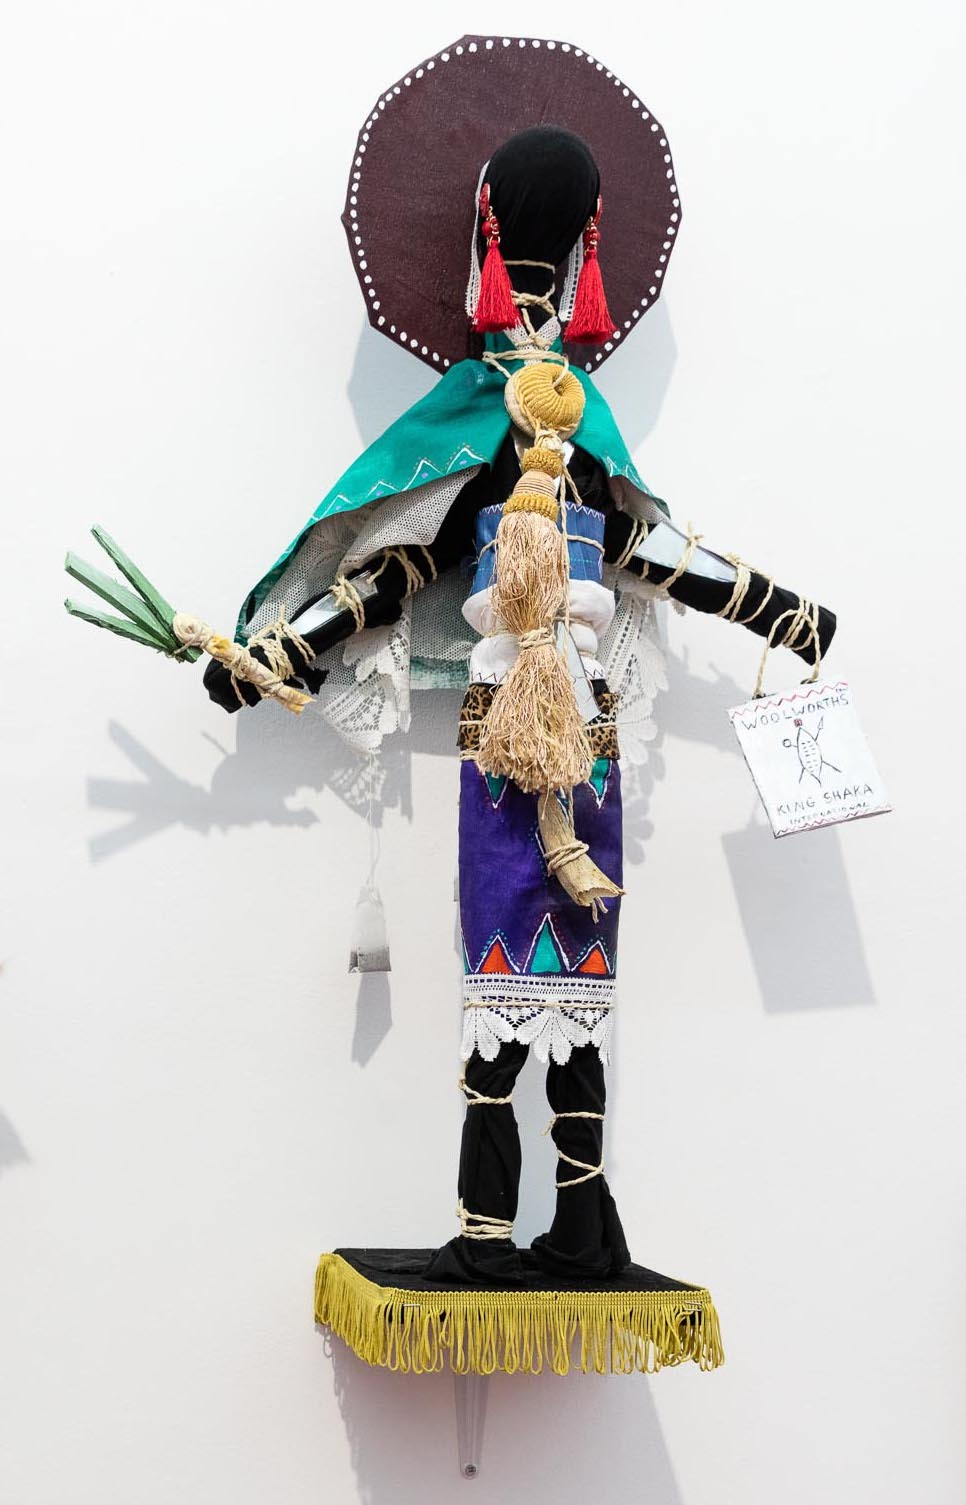 Andrew Gilbert: 'Zulu Sangoma Doll - with Leek Phone', 2018, mixed media, 80 x 50 x 20 cm